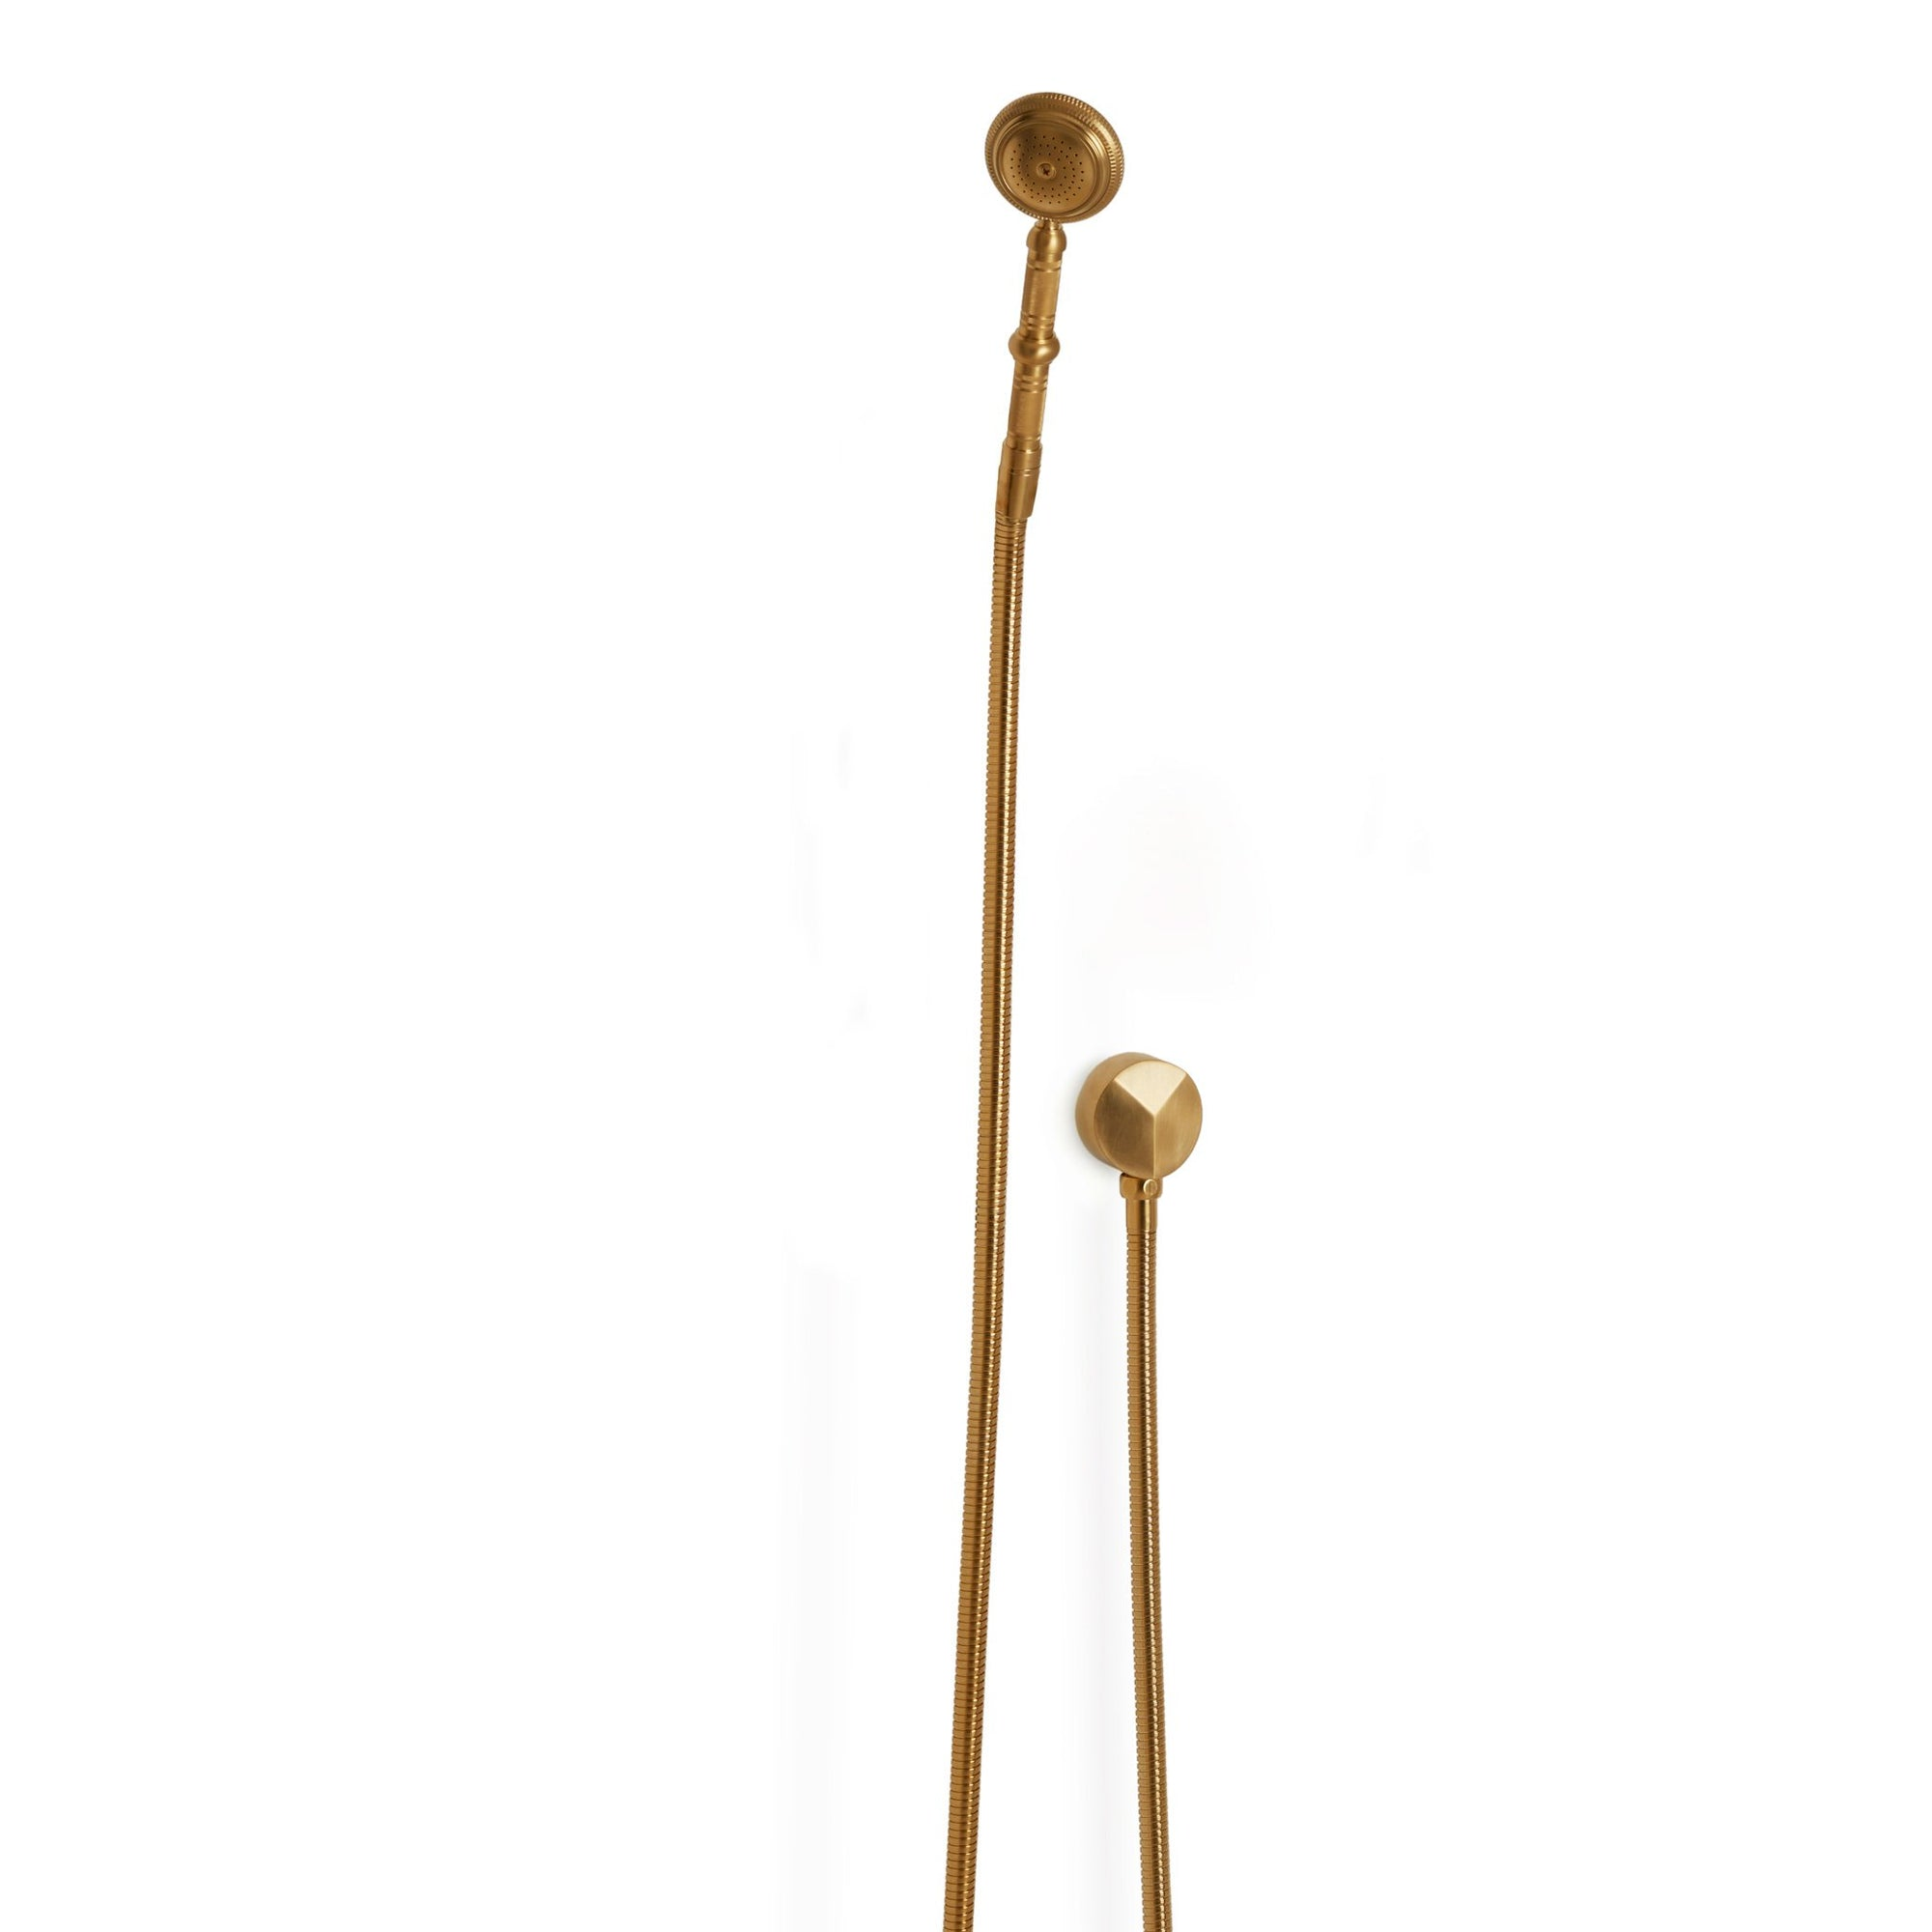 0832SPLY-GP Sherle Wagner International Knurled Hand Shower with Hose and 90 Degree Supply in Gold Plate metal finish